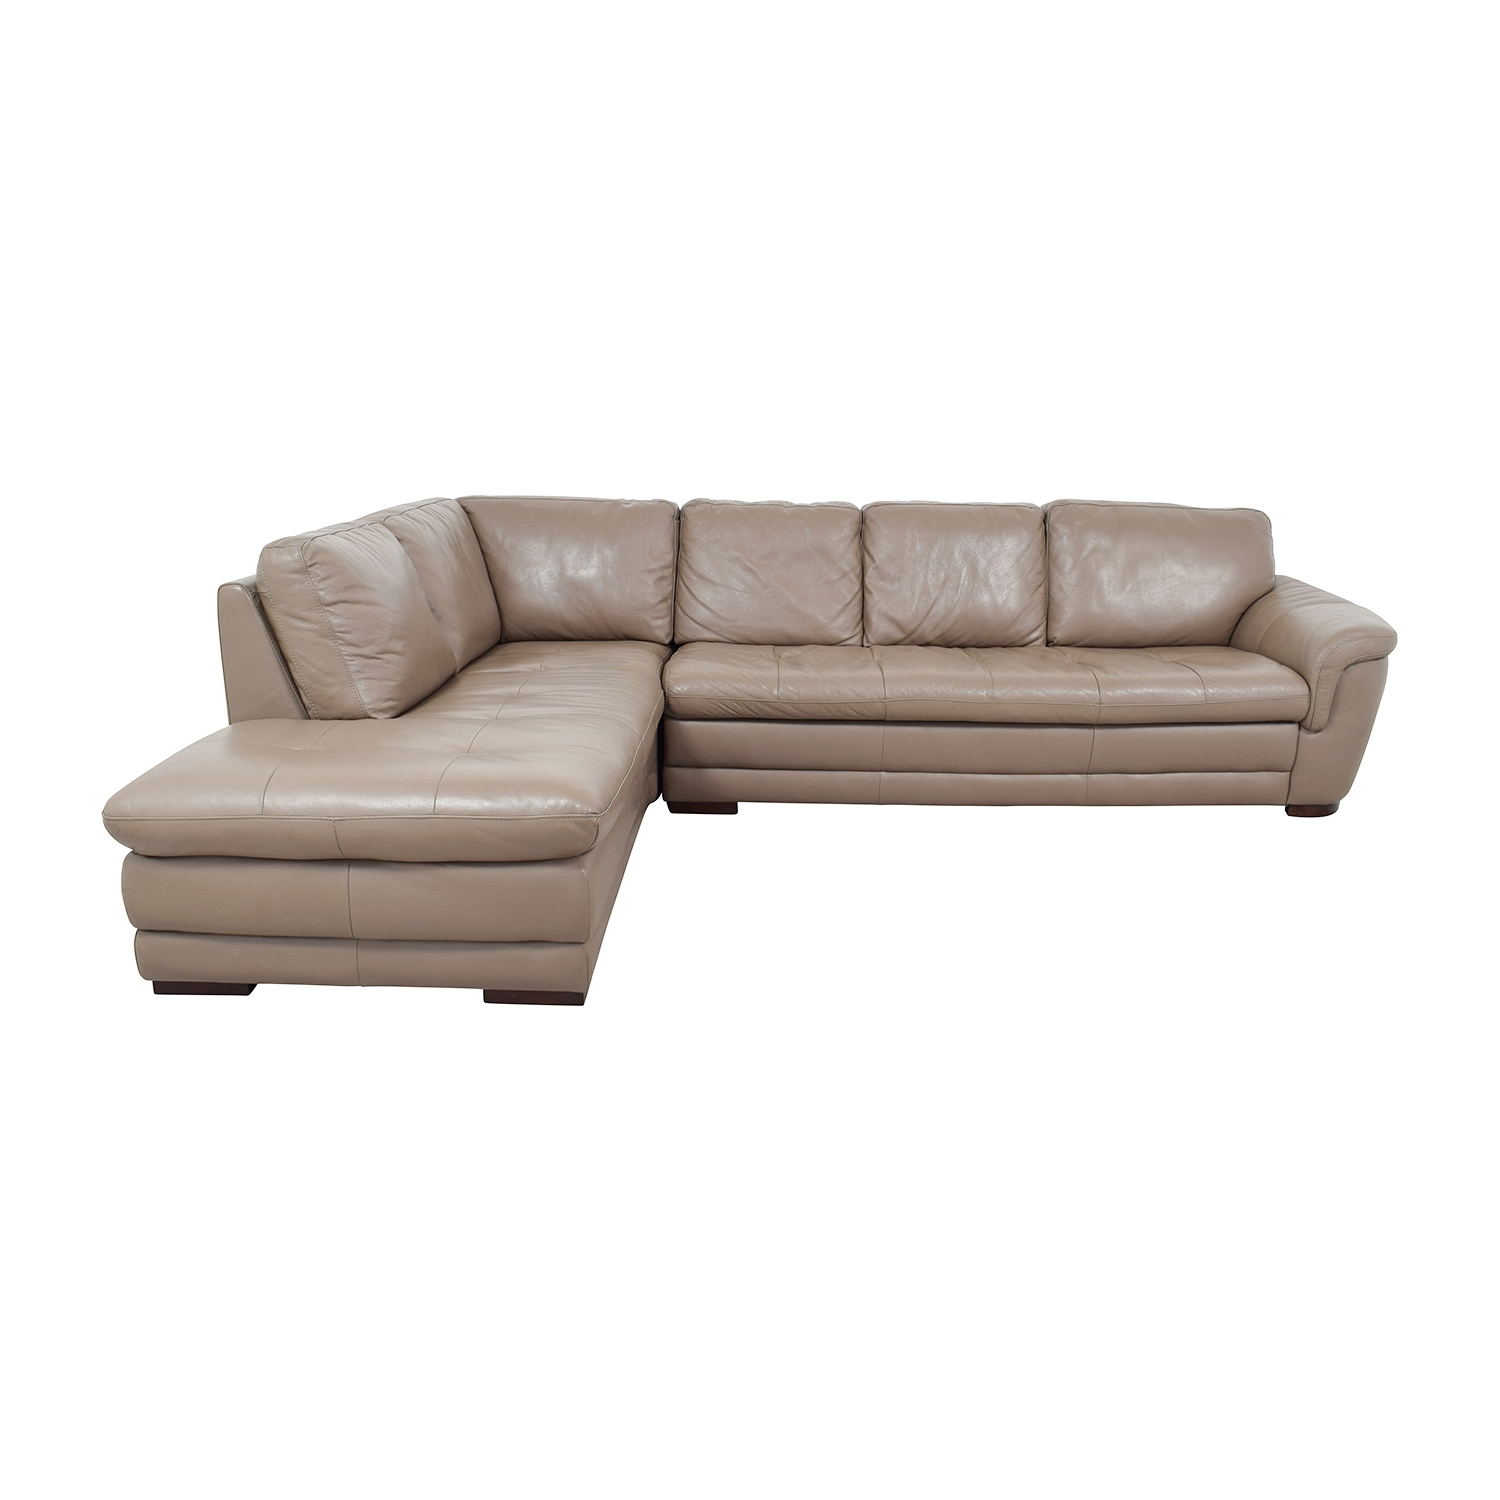 [%74% Off – Raymour And Flanigan Raymour & Flanigan Tan Tufted Within Most Up To Date Sectional Sofas At Raymour And Flanigan|Sectional Sofas At Raymour And Flanigan Regarding Most Current 74% Off – Raymour And Flanigan Raymour & Flanigan Tan Tufted|Current Sectional Sofas At Raymour And Flanigan Pertaining To 74% Off – Raymour And Flanigan Raymour & Flanigan Tan Tufted|2019 74% Off – Raymour And Flanigan Raymour & Flanigan Tan Tufted Within Sectional Sofas At Raymour And Flanigan%] (View 7 of 20)